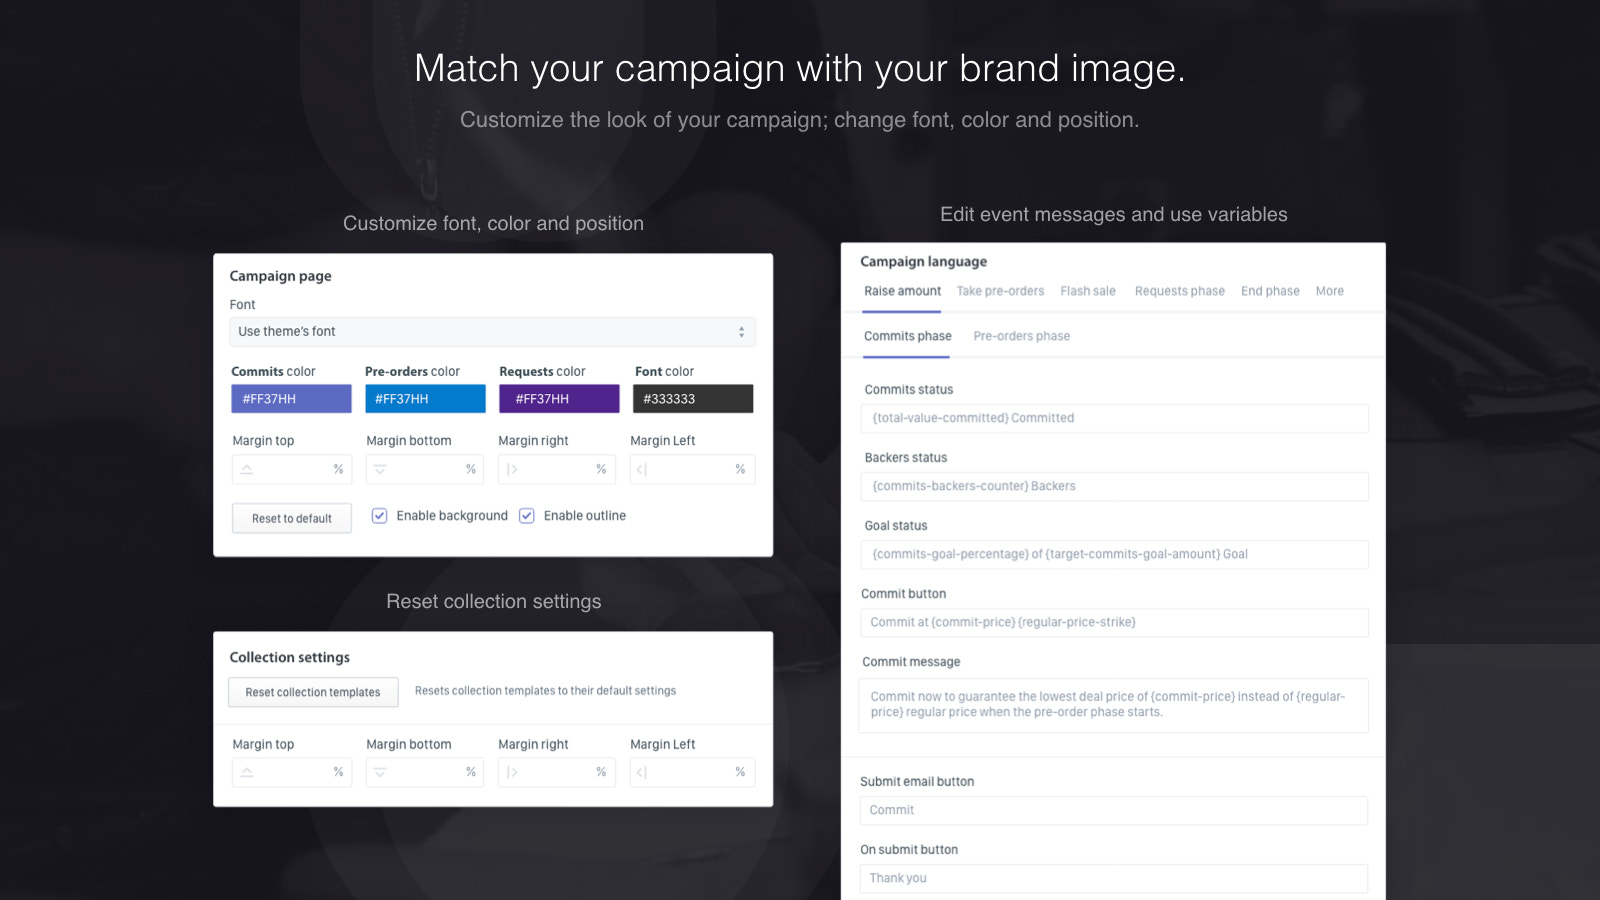 Match your campaign with your brand image.